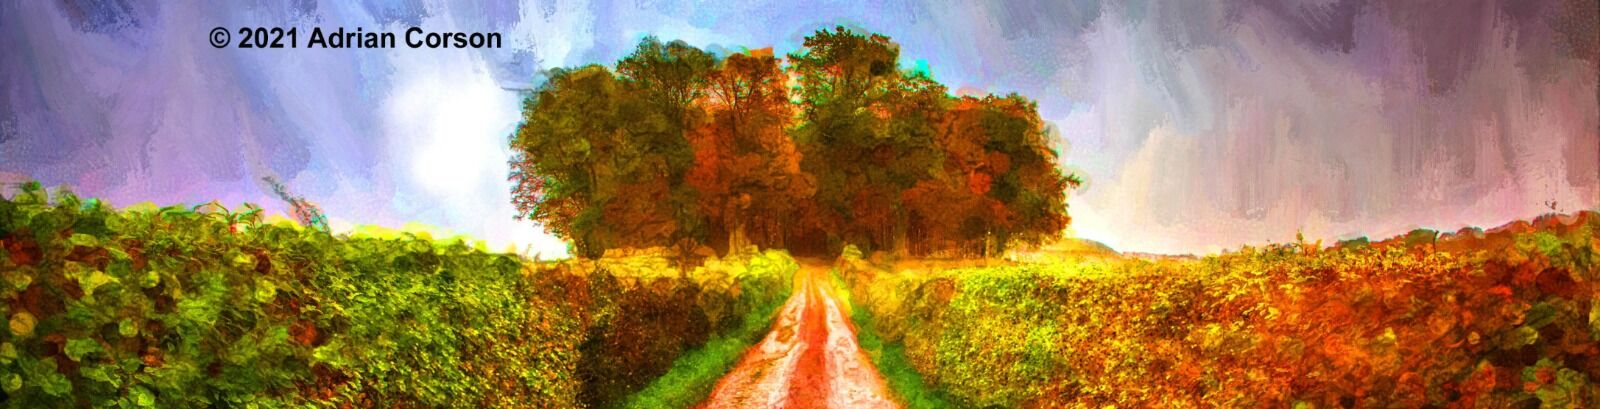 189-view to autumn woods